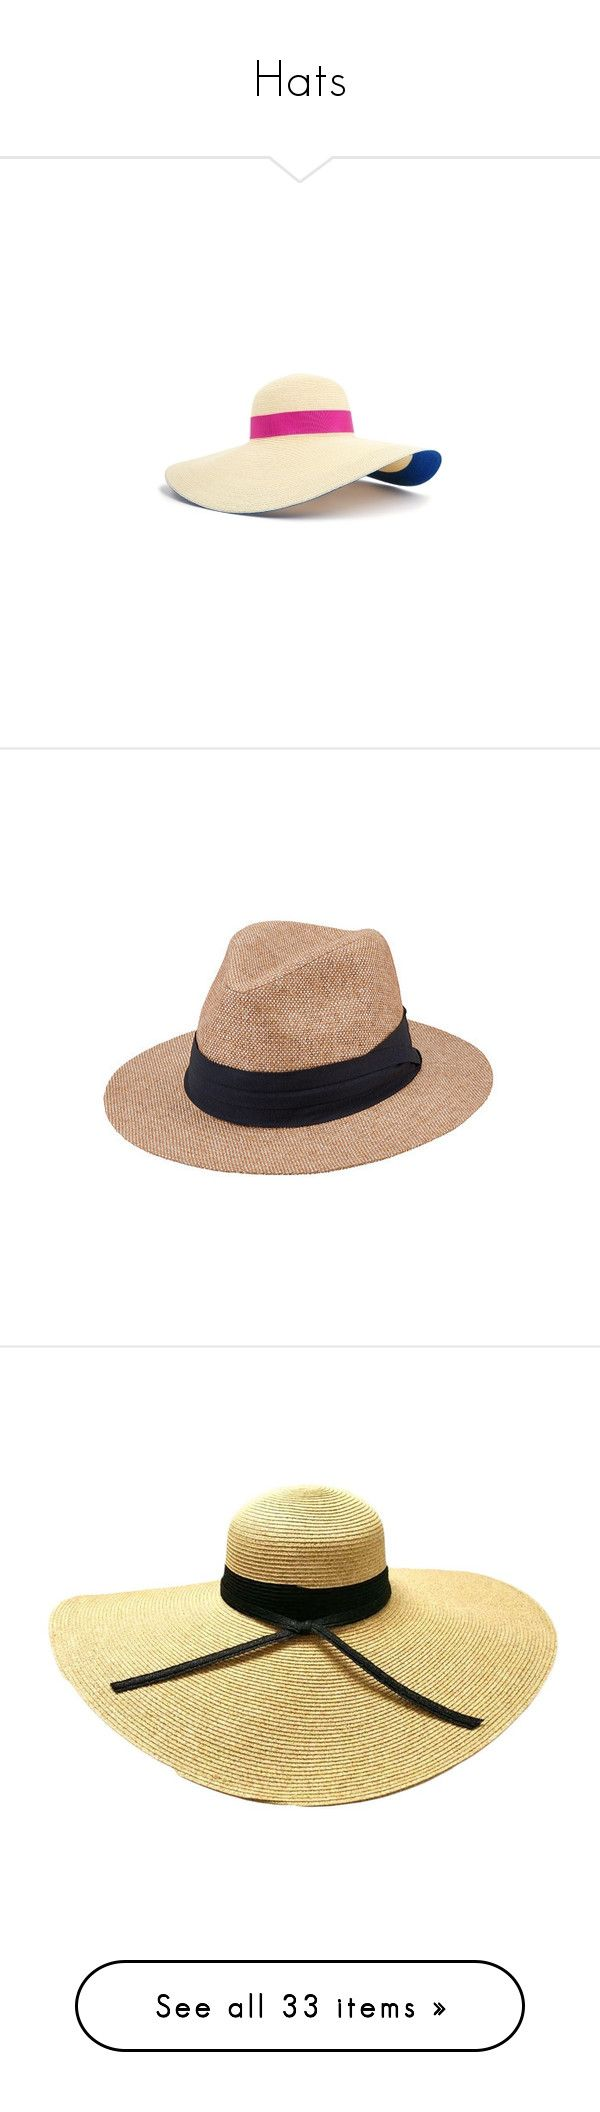 """Hats"" by vegasblondie ❤ liked on Polyvore featuring dresses, men's fashion, men's accessories, men's hats, black, men's brimmed hats, mens fedora hats, mens wide brim fedora hats, mens wide brim fedora and accessories"